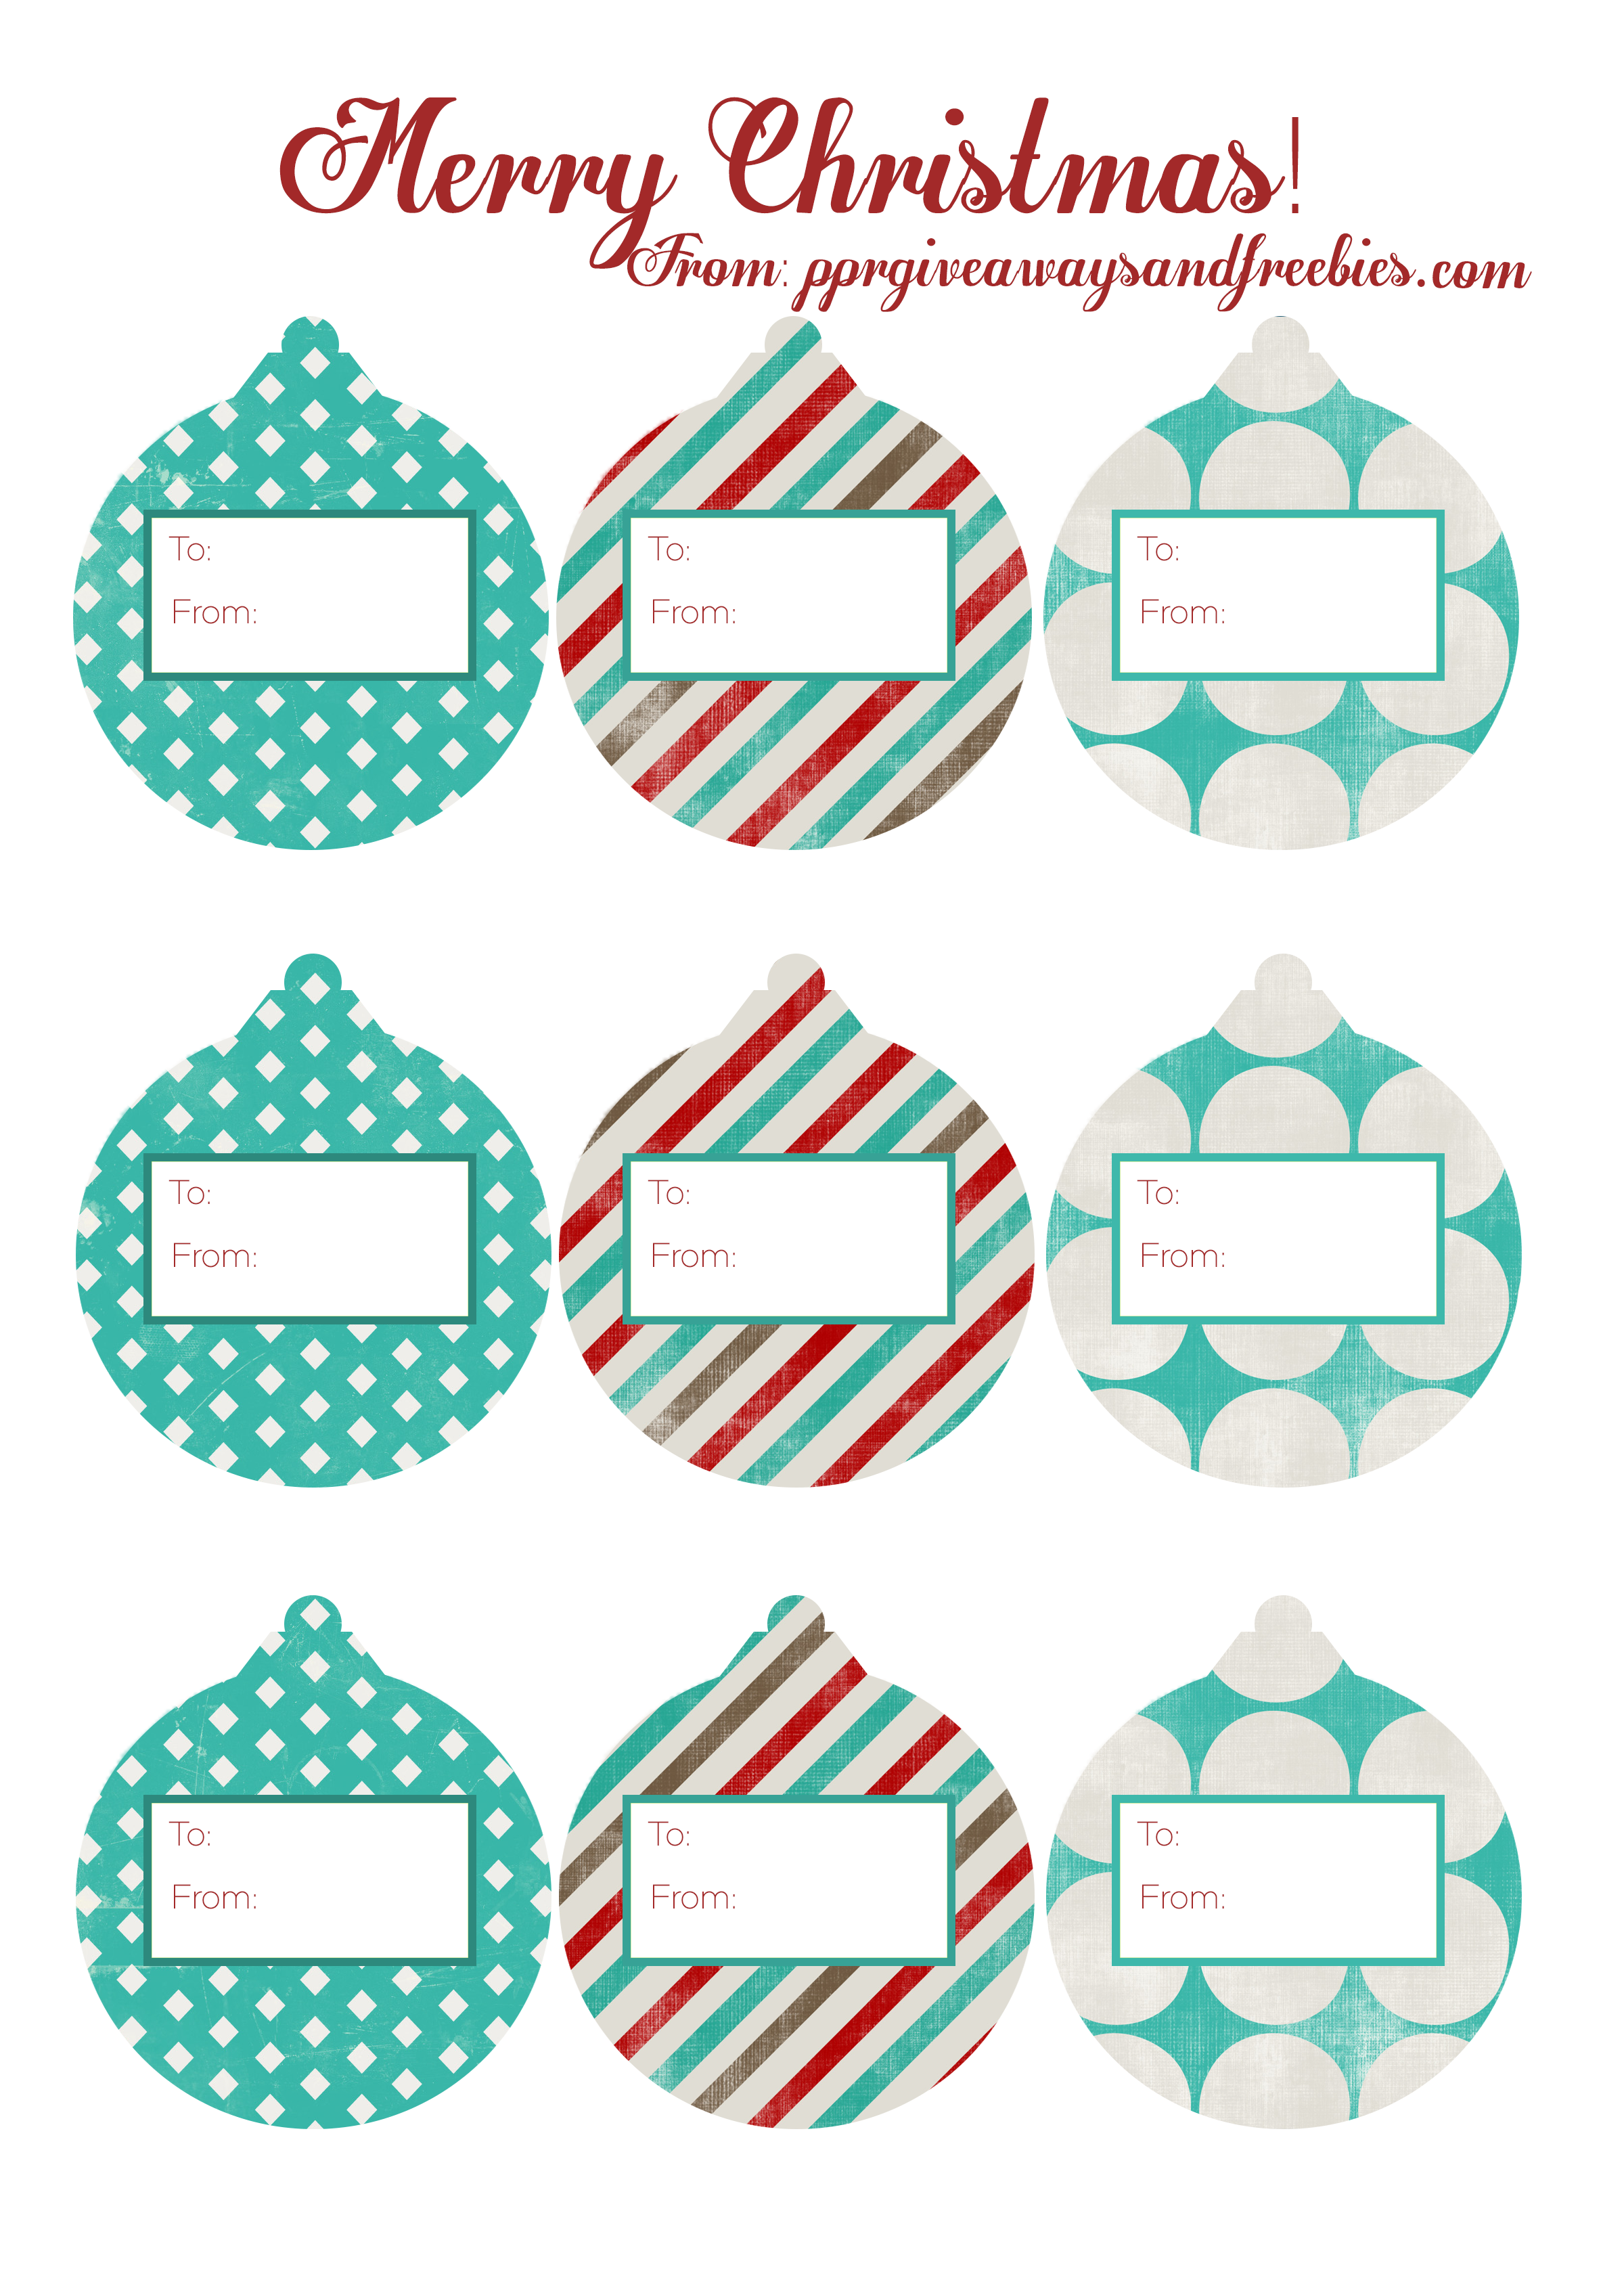 Christmas Ornament Gift Tags